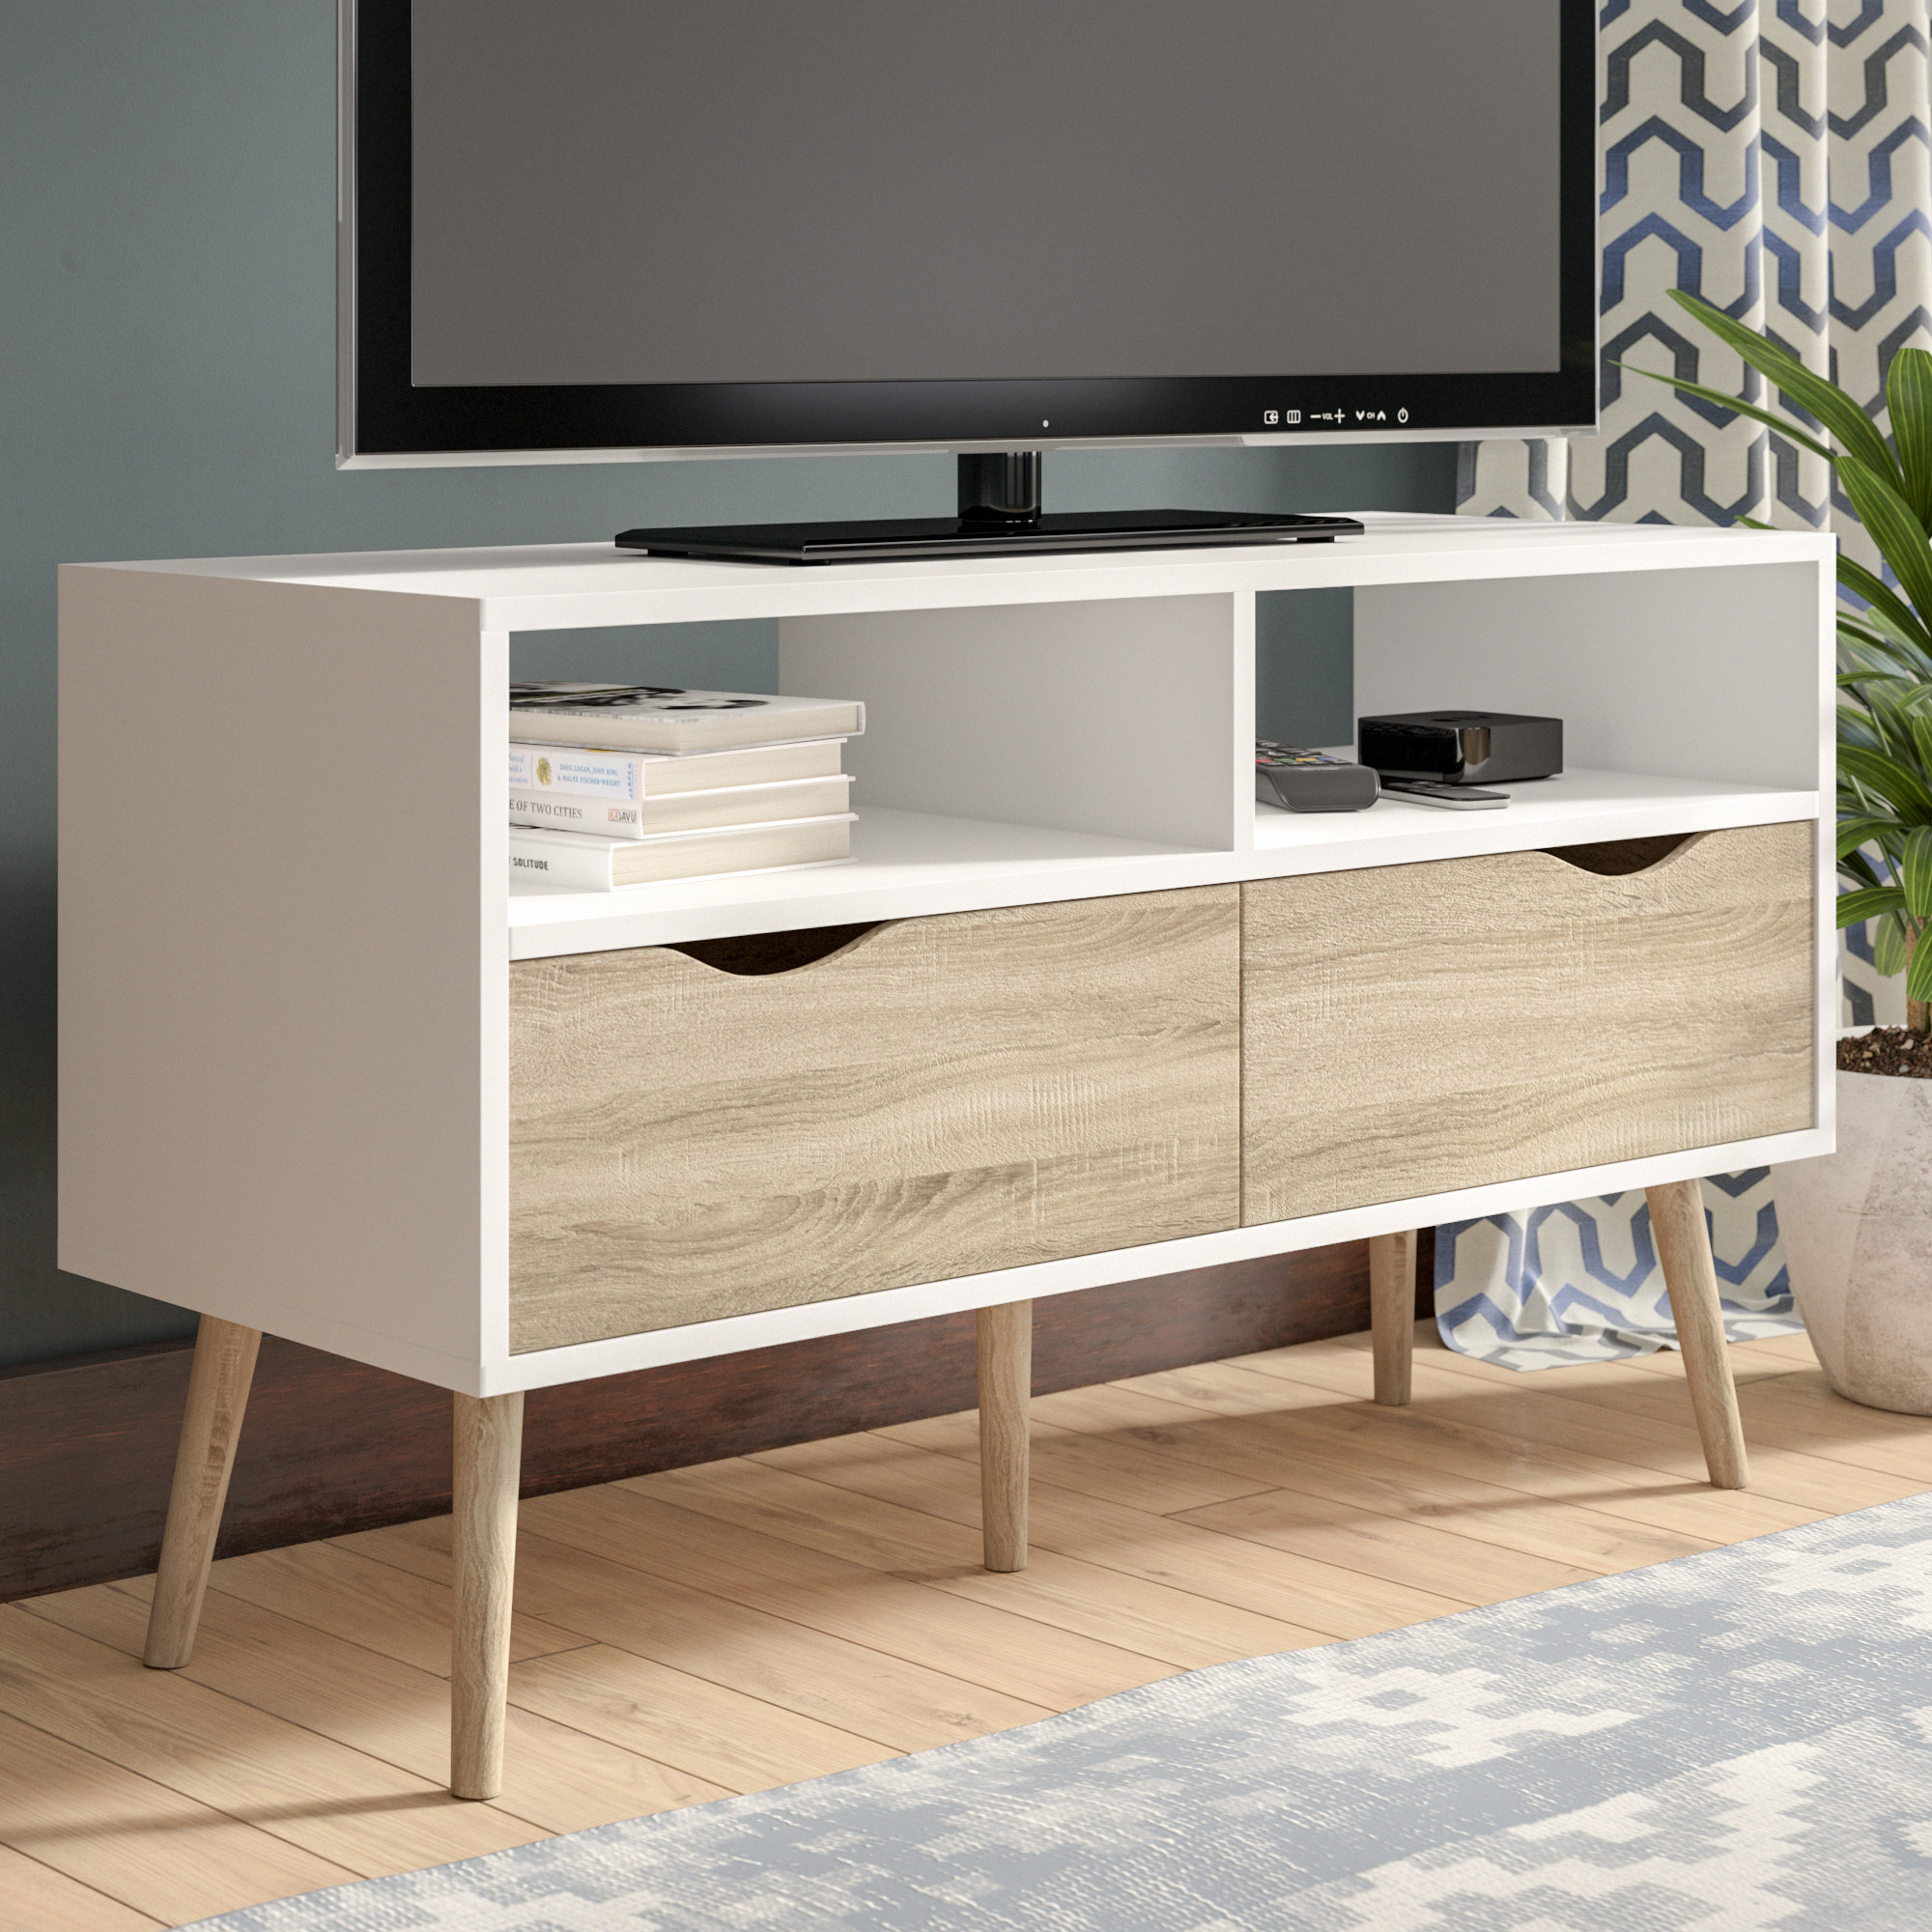 Mid-Century Modern Tv Stands You'll Love | Wayfair inside Canyon 54 Inch Tv Stands (Image 15 of 30)